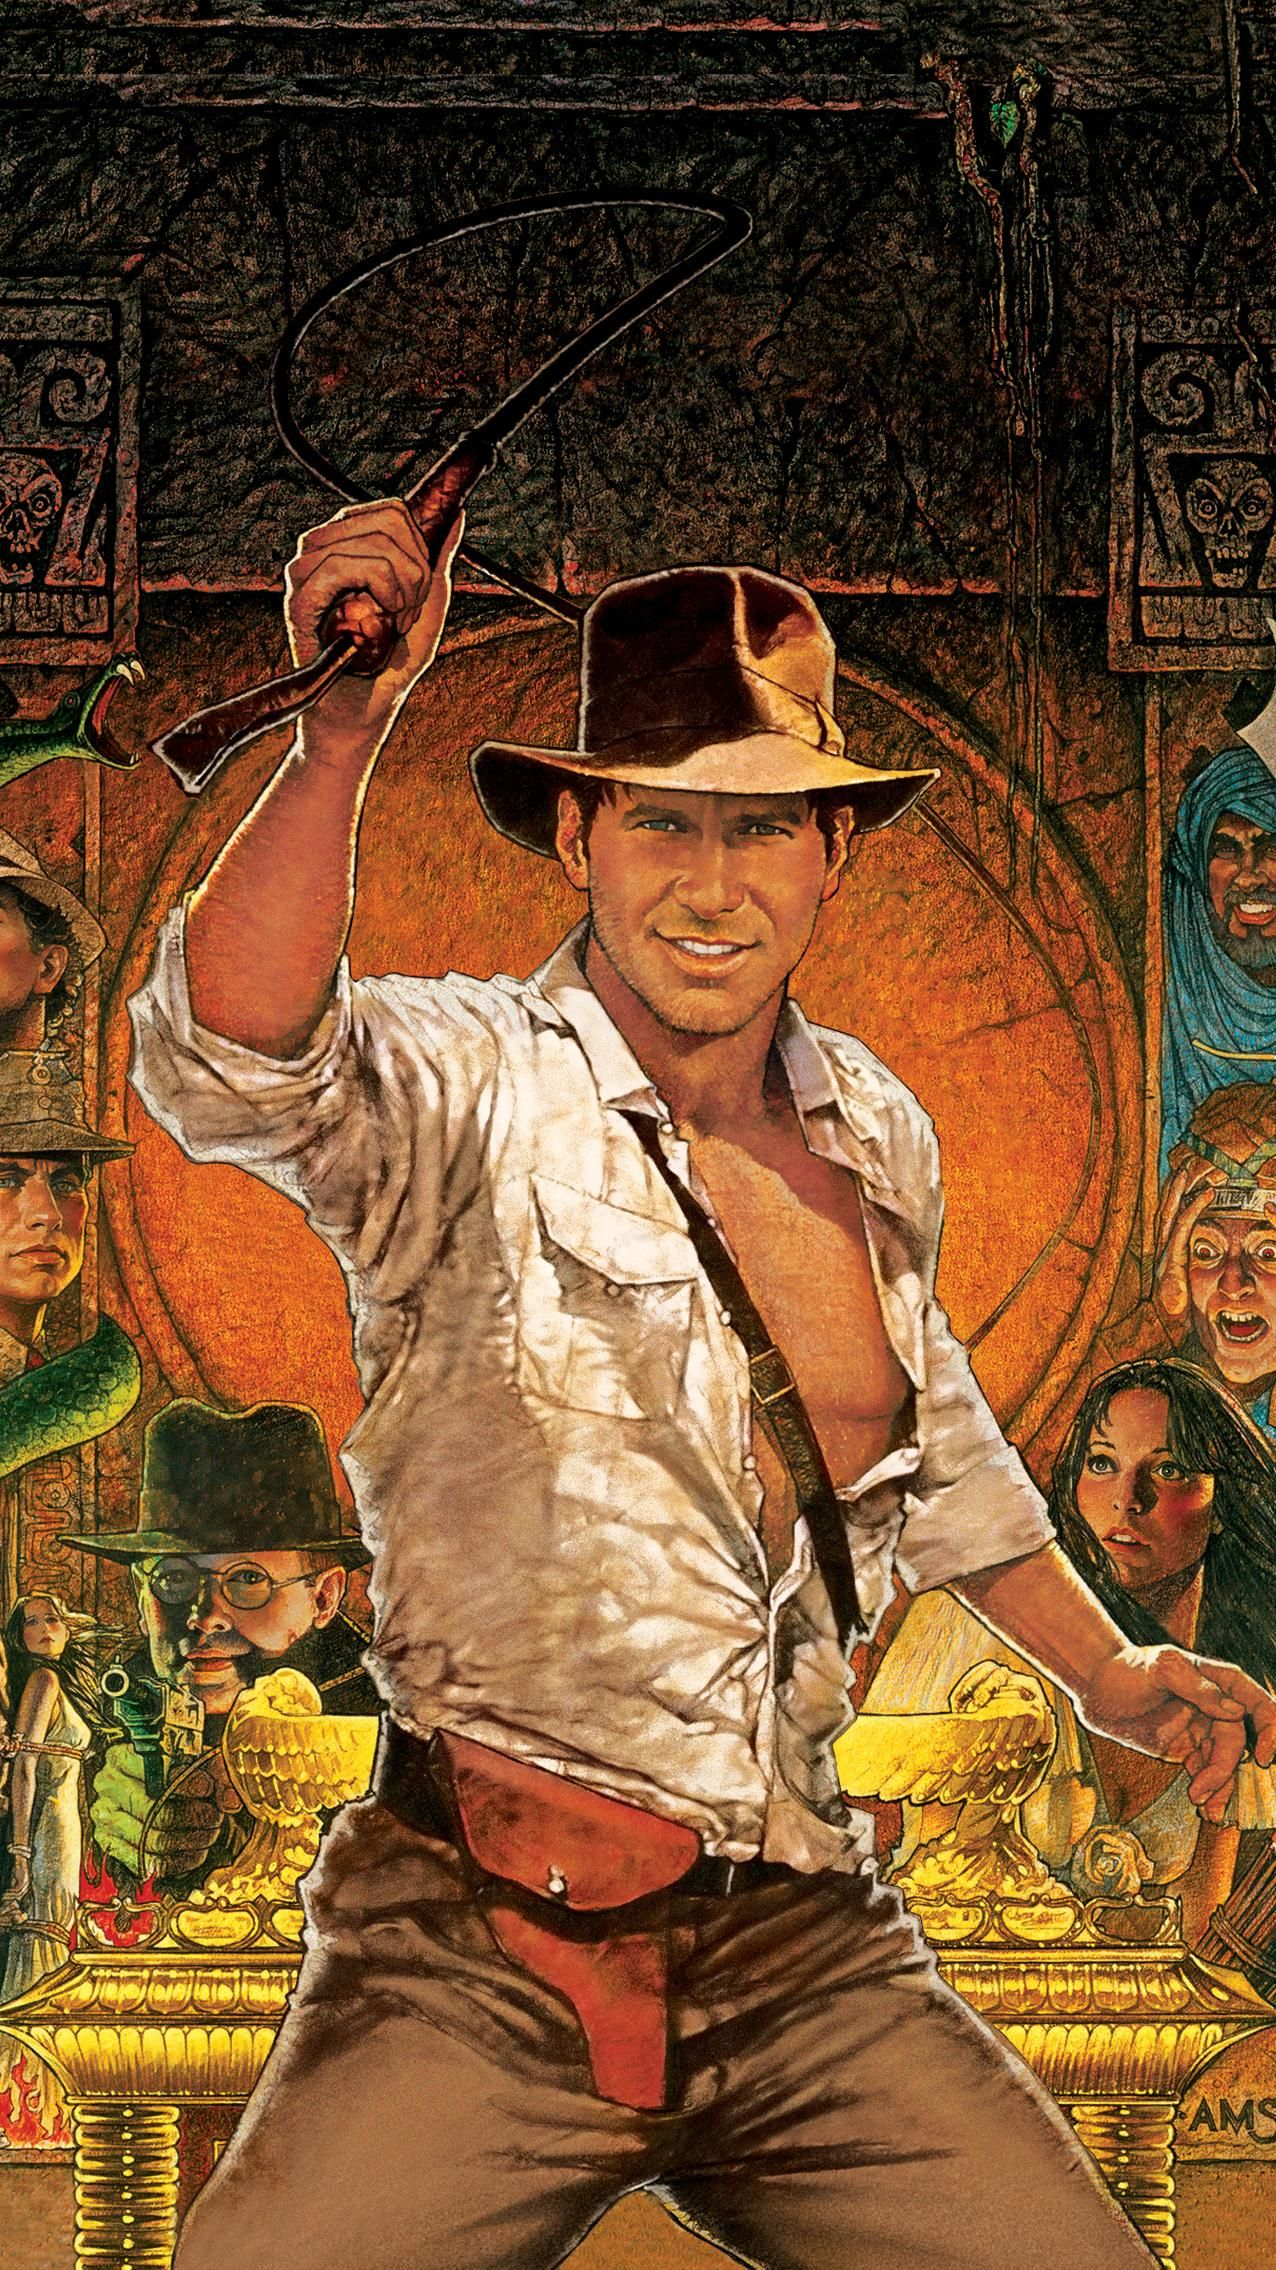 Raiders Of The Lost Ark 1981 Phone Wallpaper Moviemania Iconic Movie Posters Indiana Jones Iconic Movies